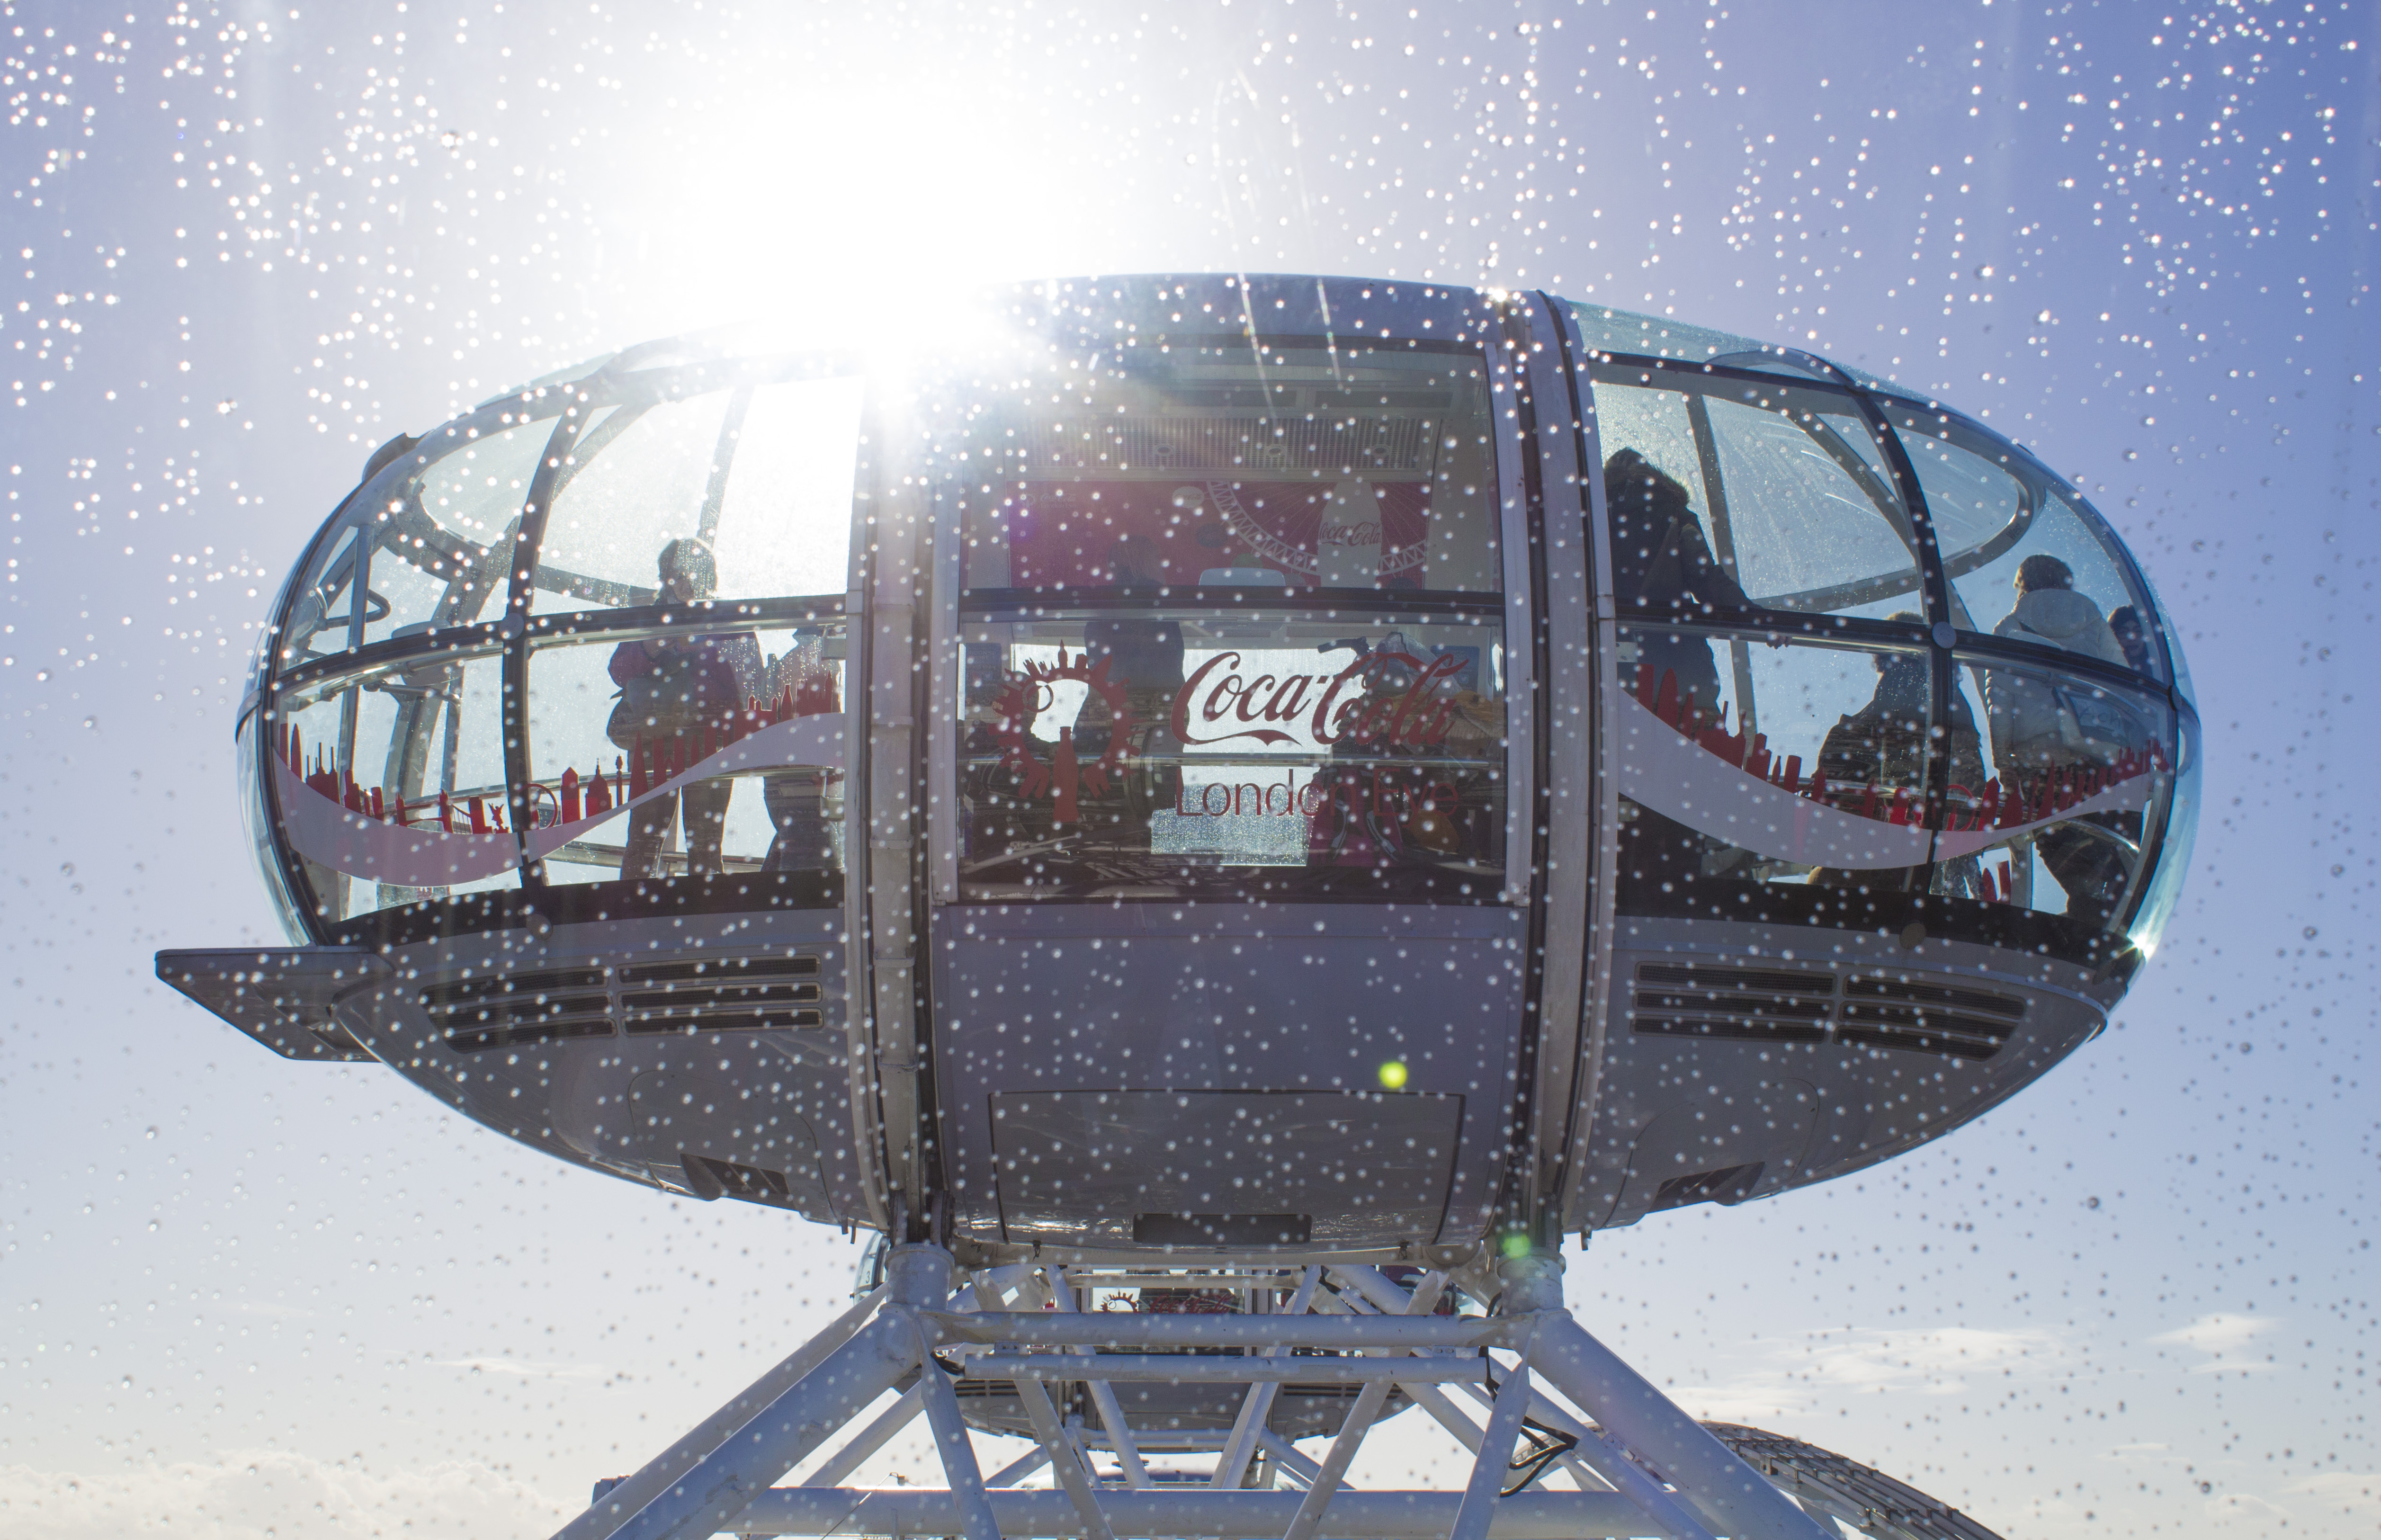 Travelling aboard the Coca-Cola London Eye